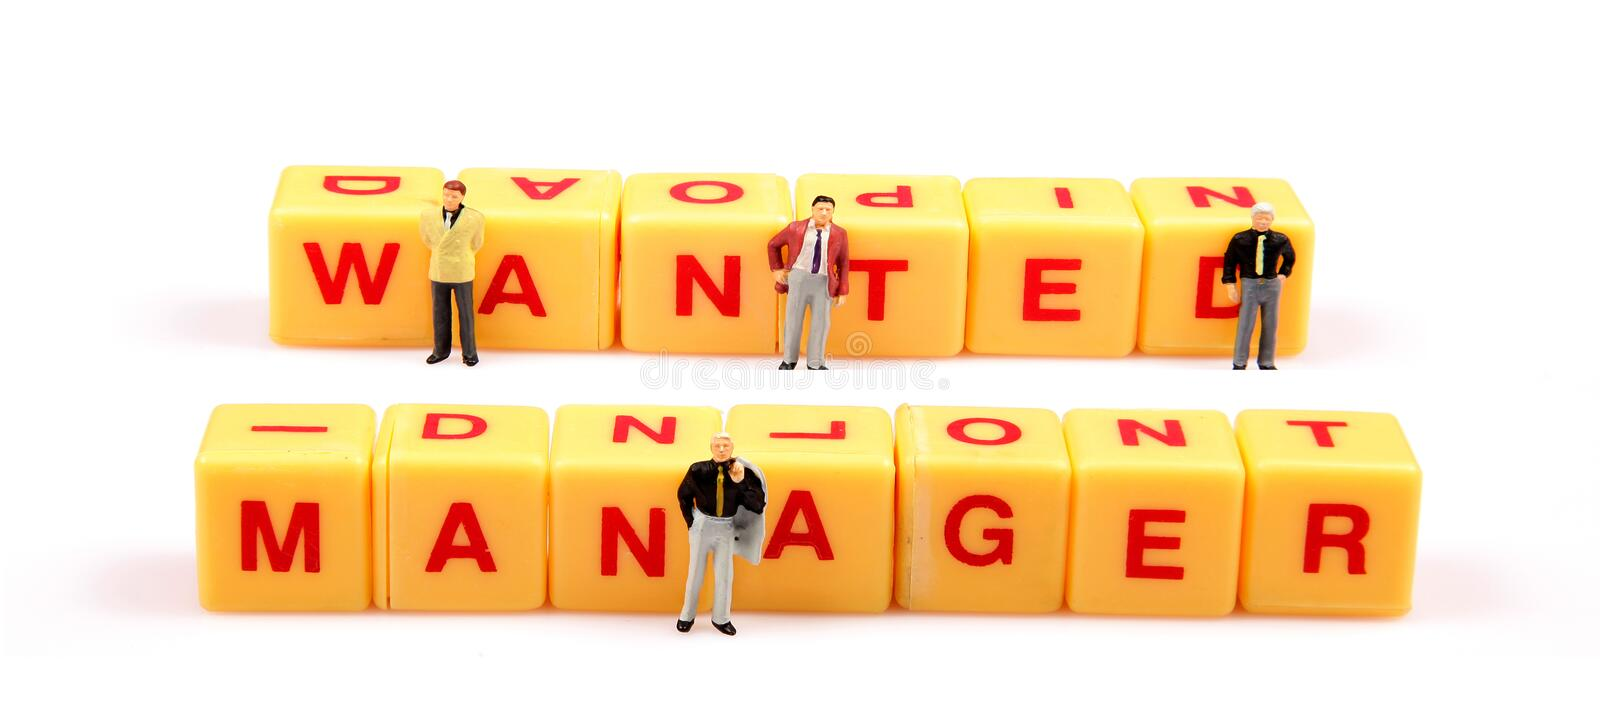 Wanted Manager Royalty Free Stock Image